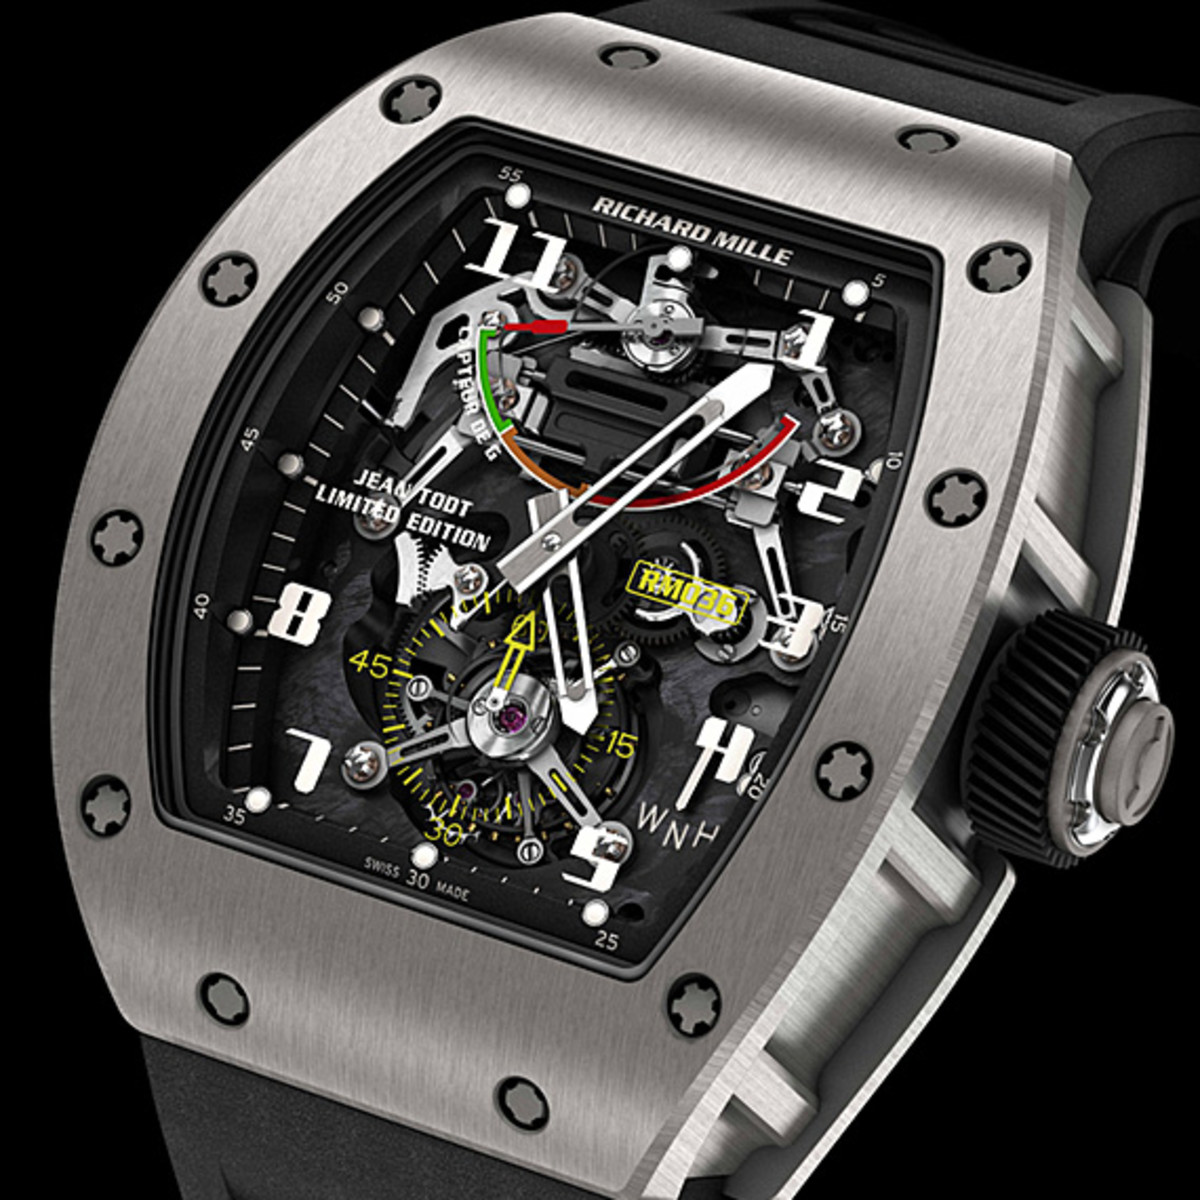 richard-mille-rm036-tourbillon-g-senor-jean-todt-watch-02